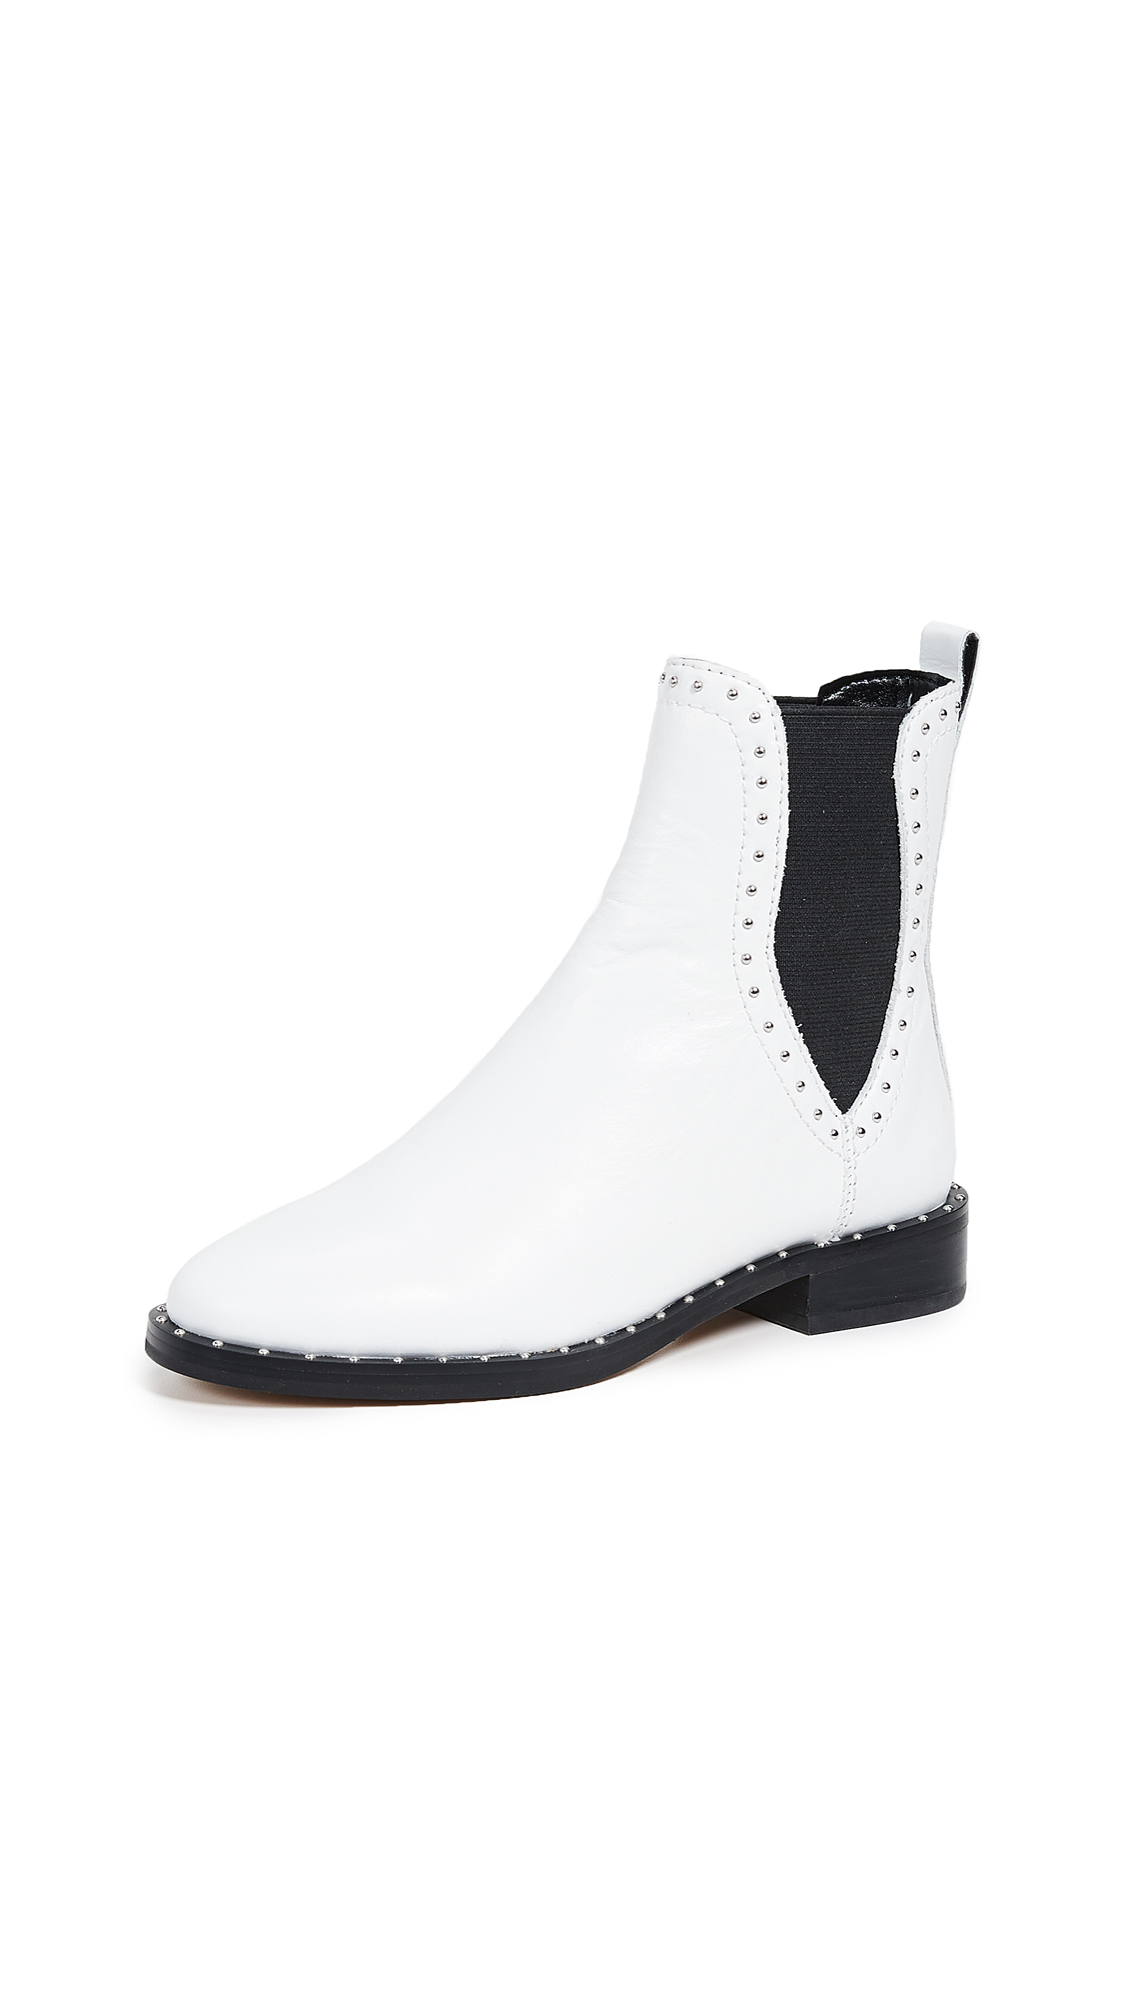 Rebecca Minkoff Sabeen Chelsea Booties - Optic White/Black